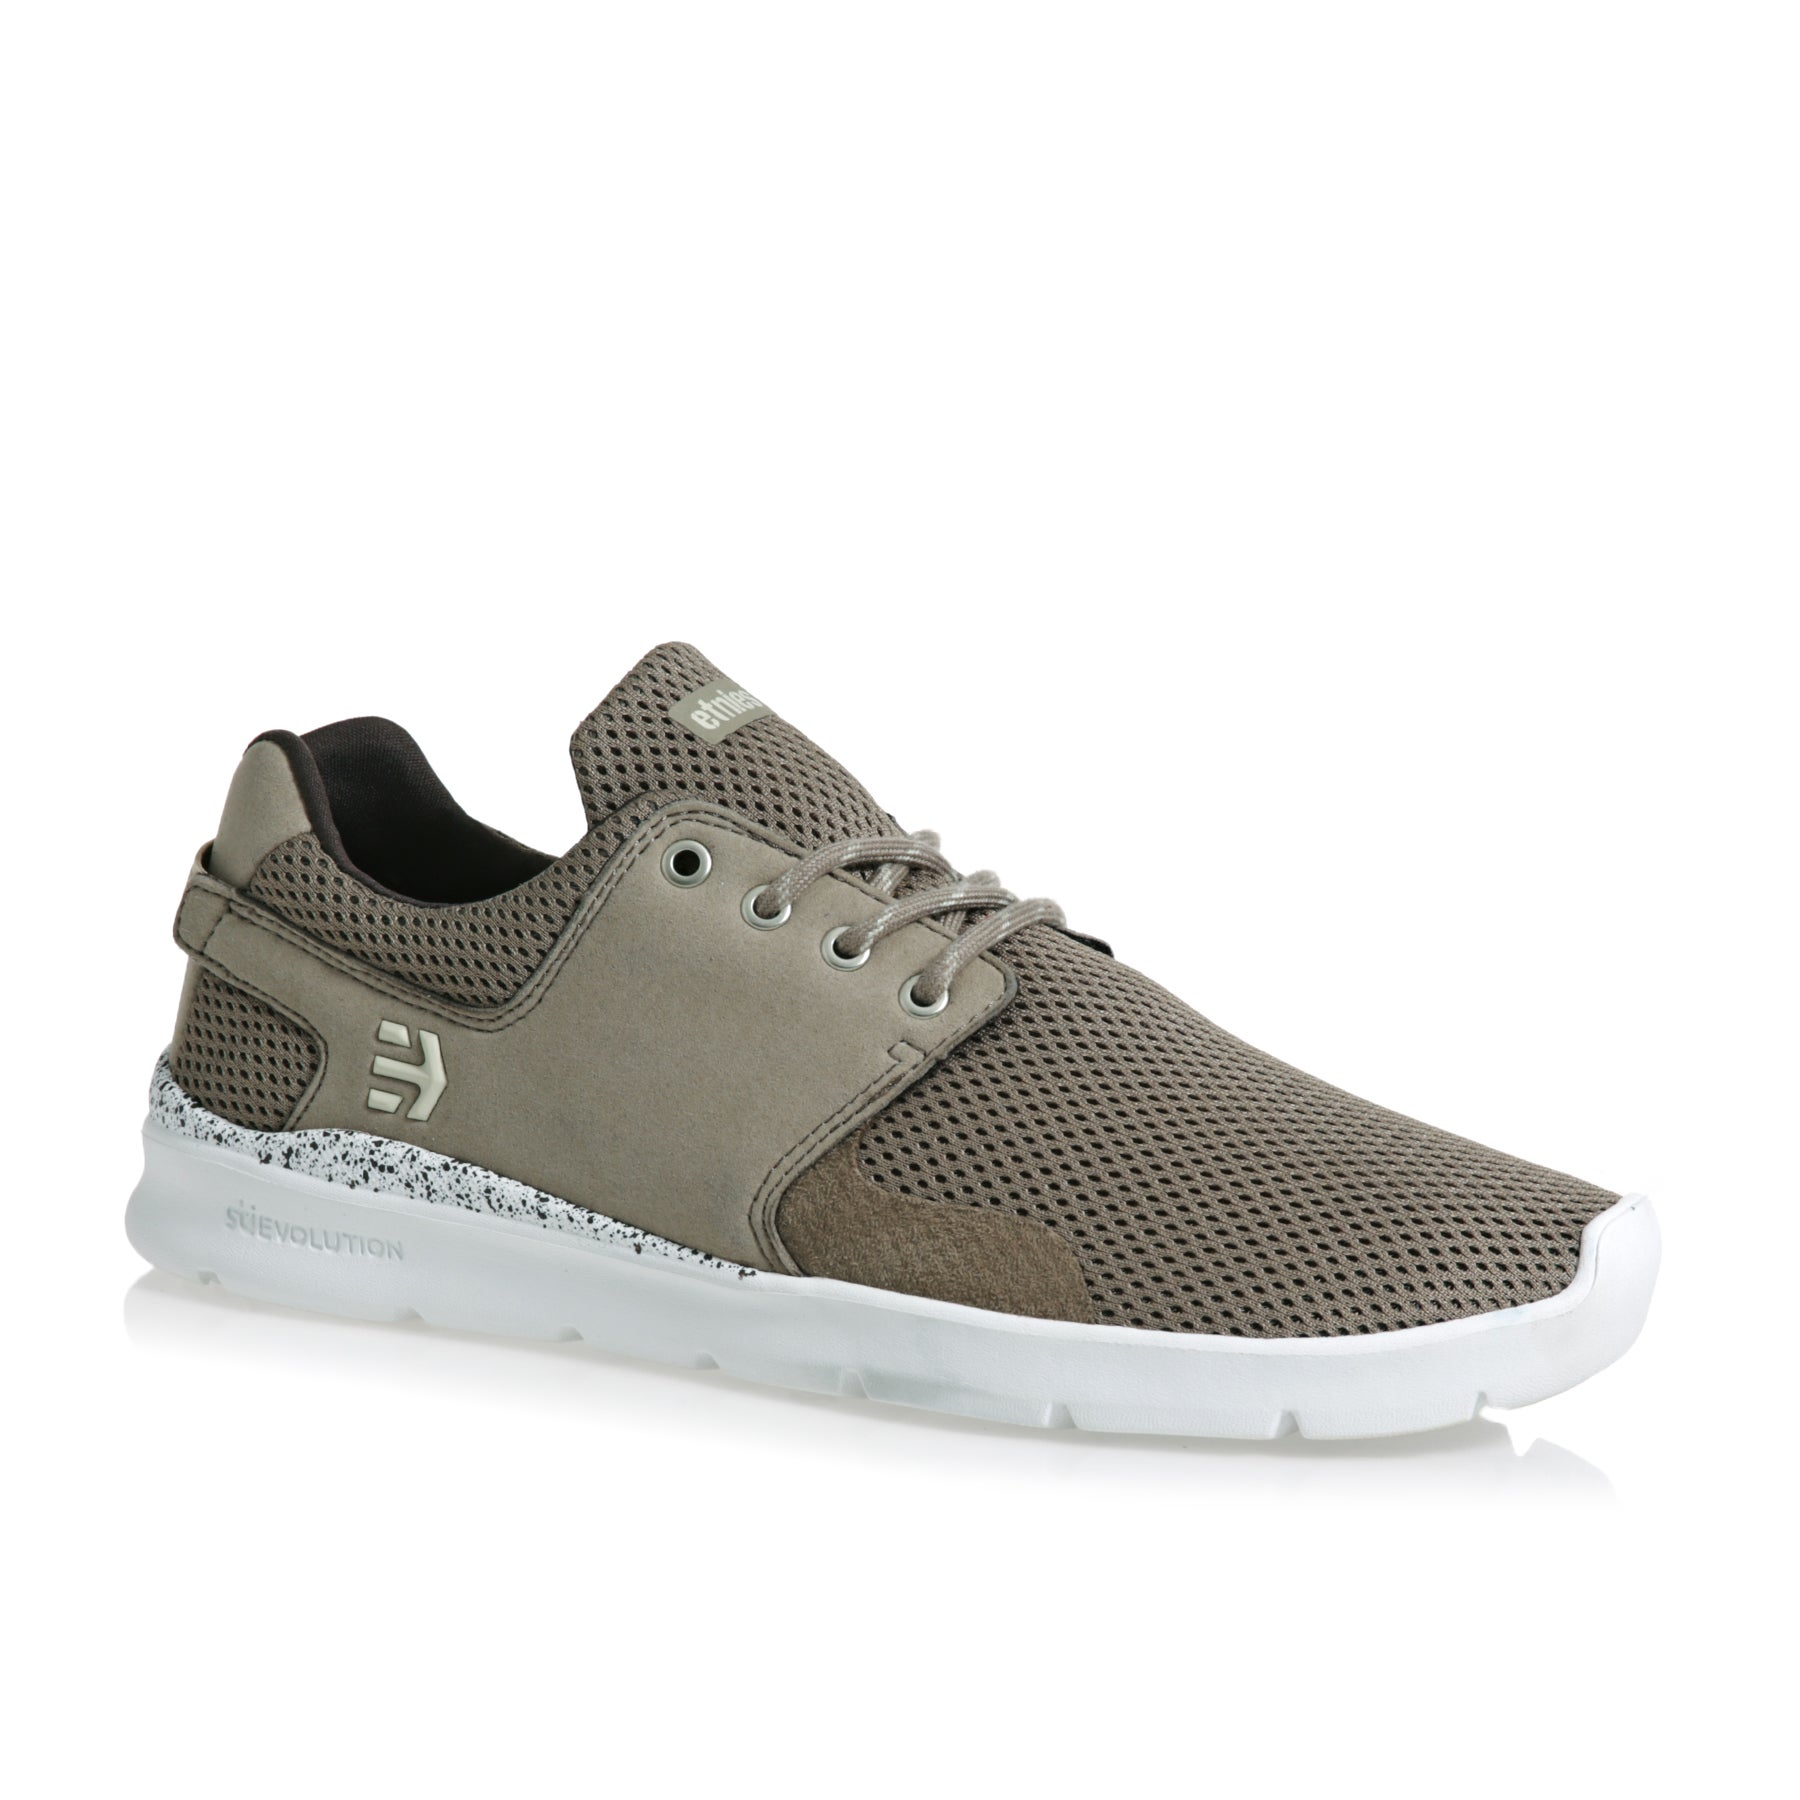 Etnies Scout XT Shoes - Tan/brown